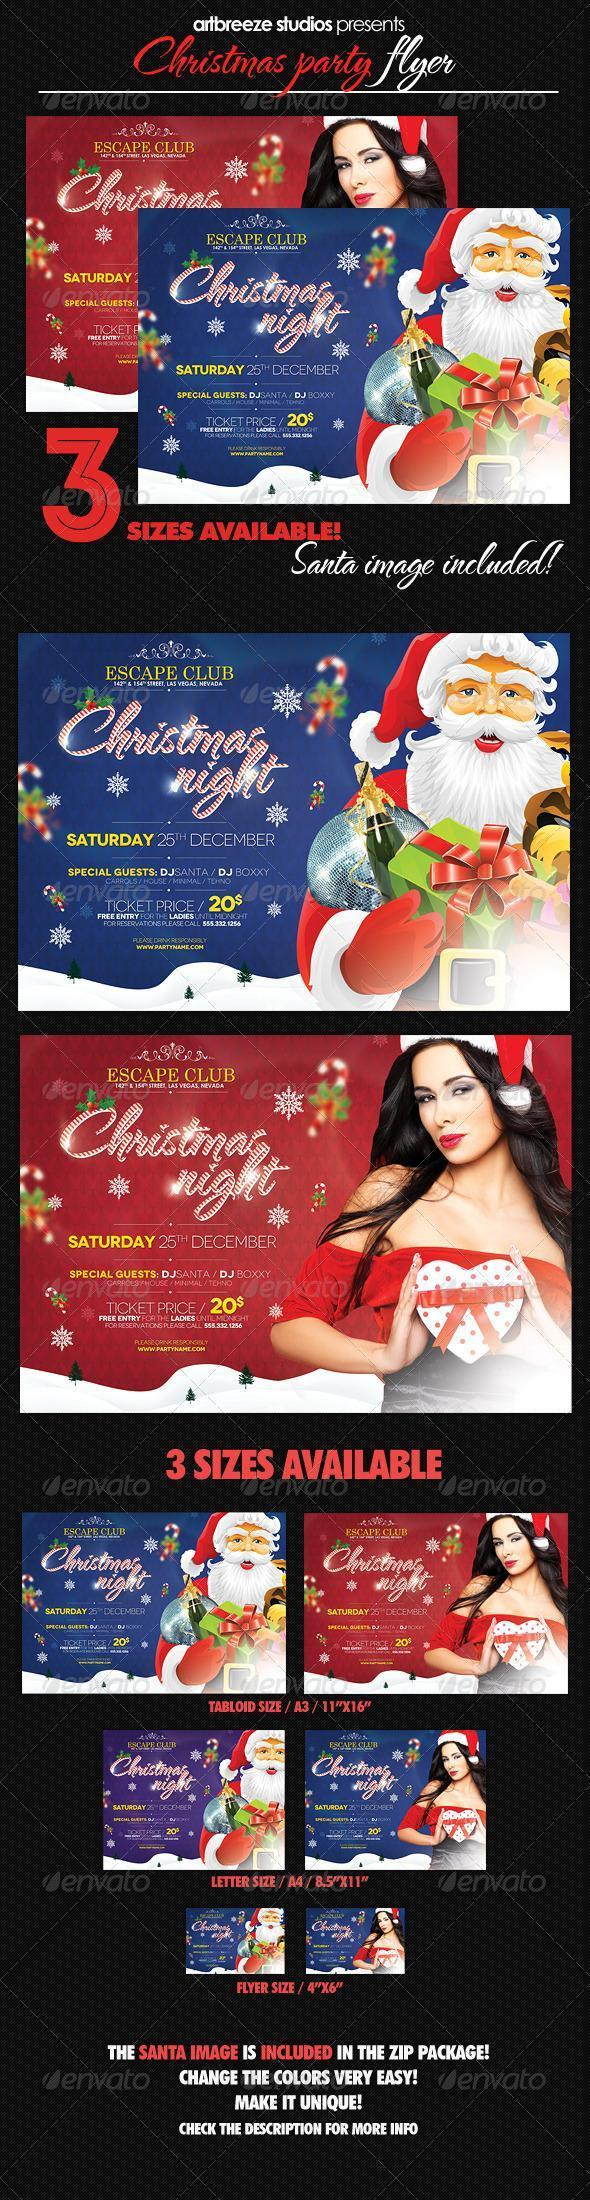 Santa Klaus Christmas Party Flyer